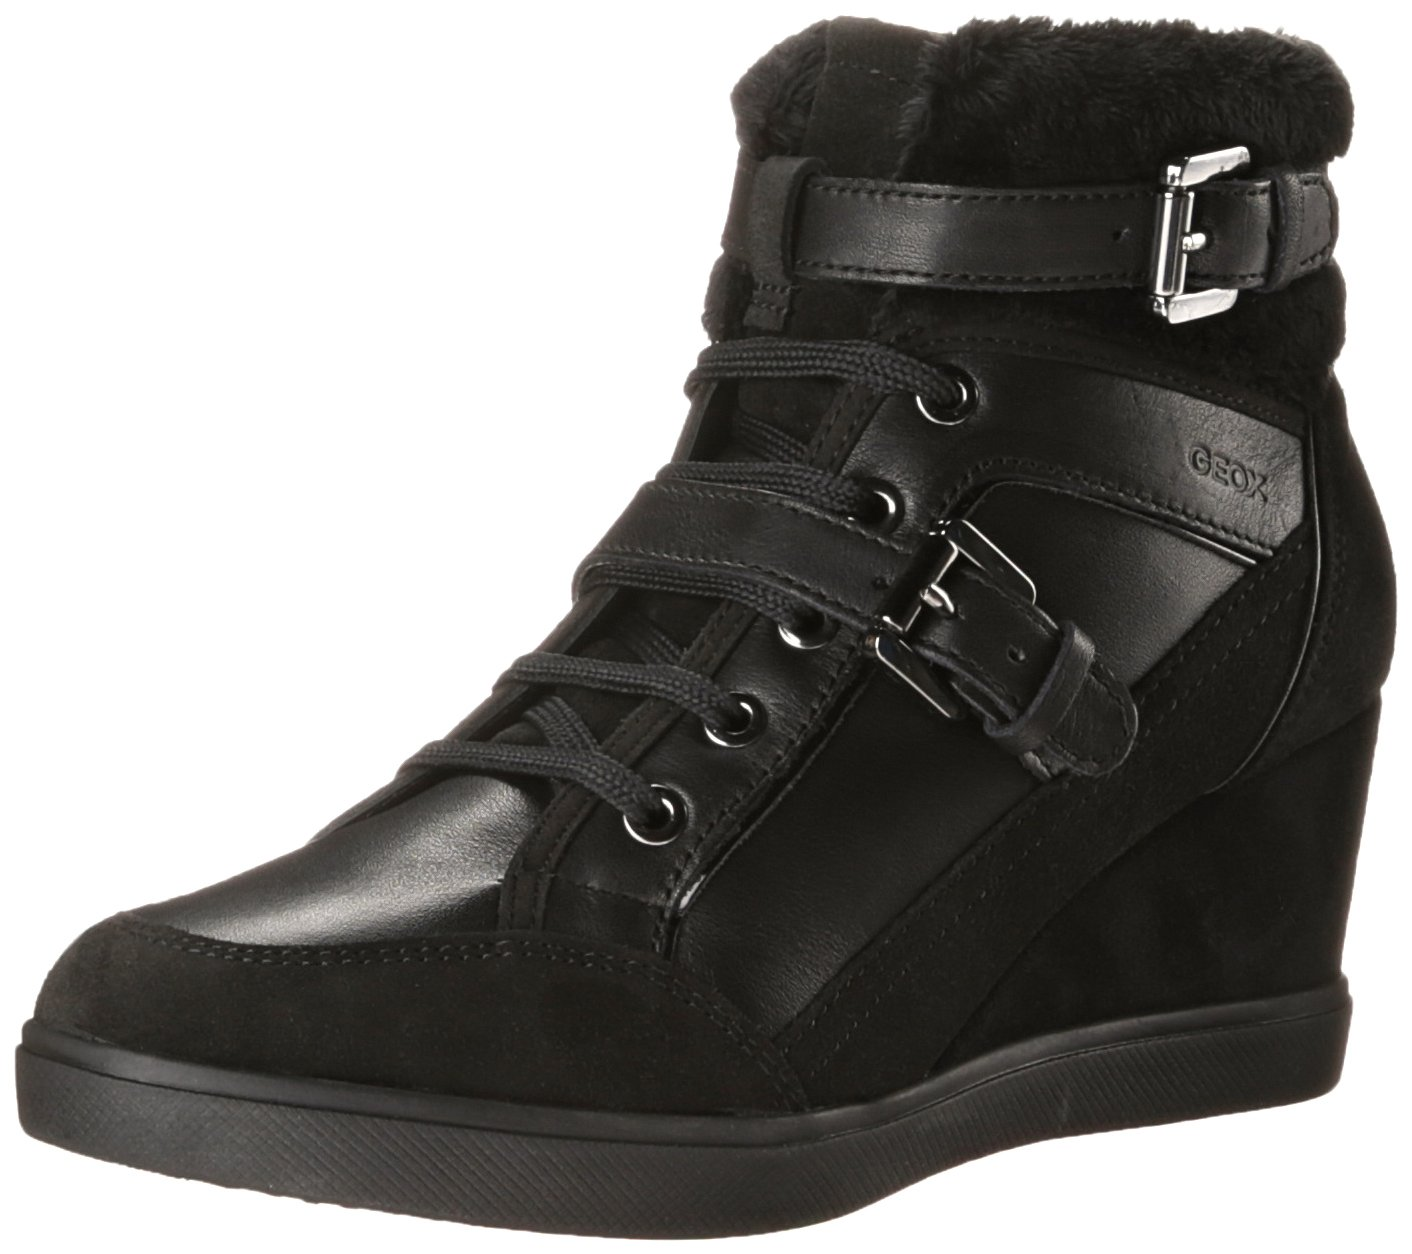 Geox D Eleni D Womens Leather Wedge Sneakers / Boots-Black-10